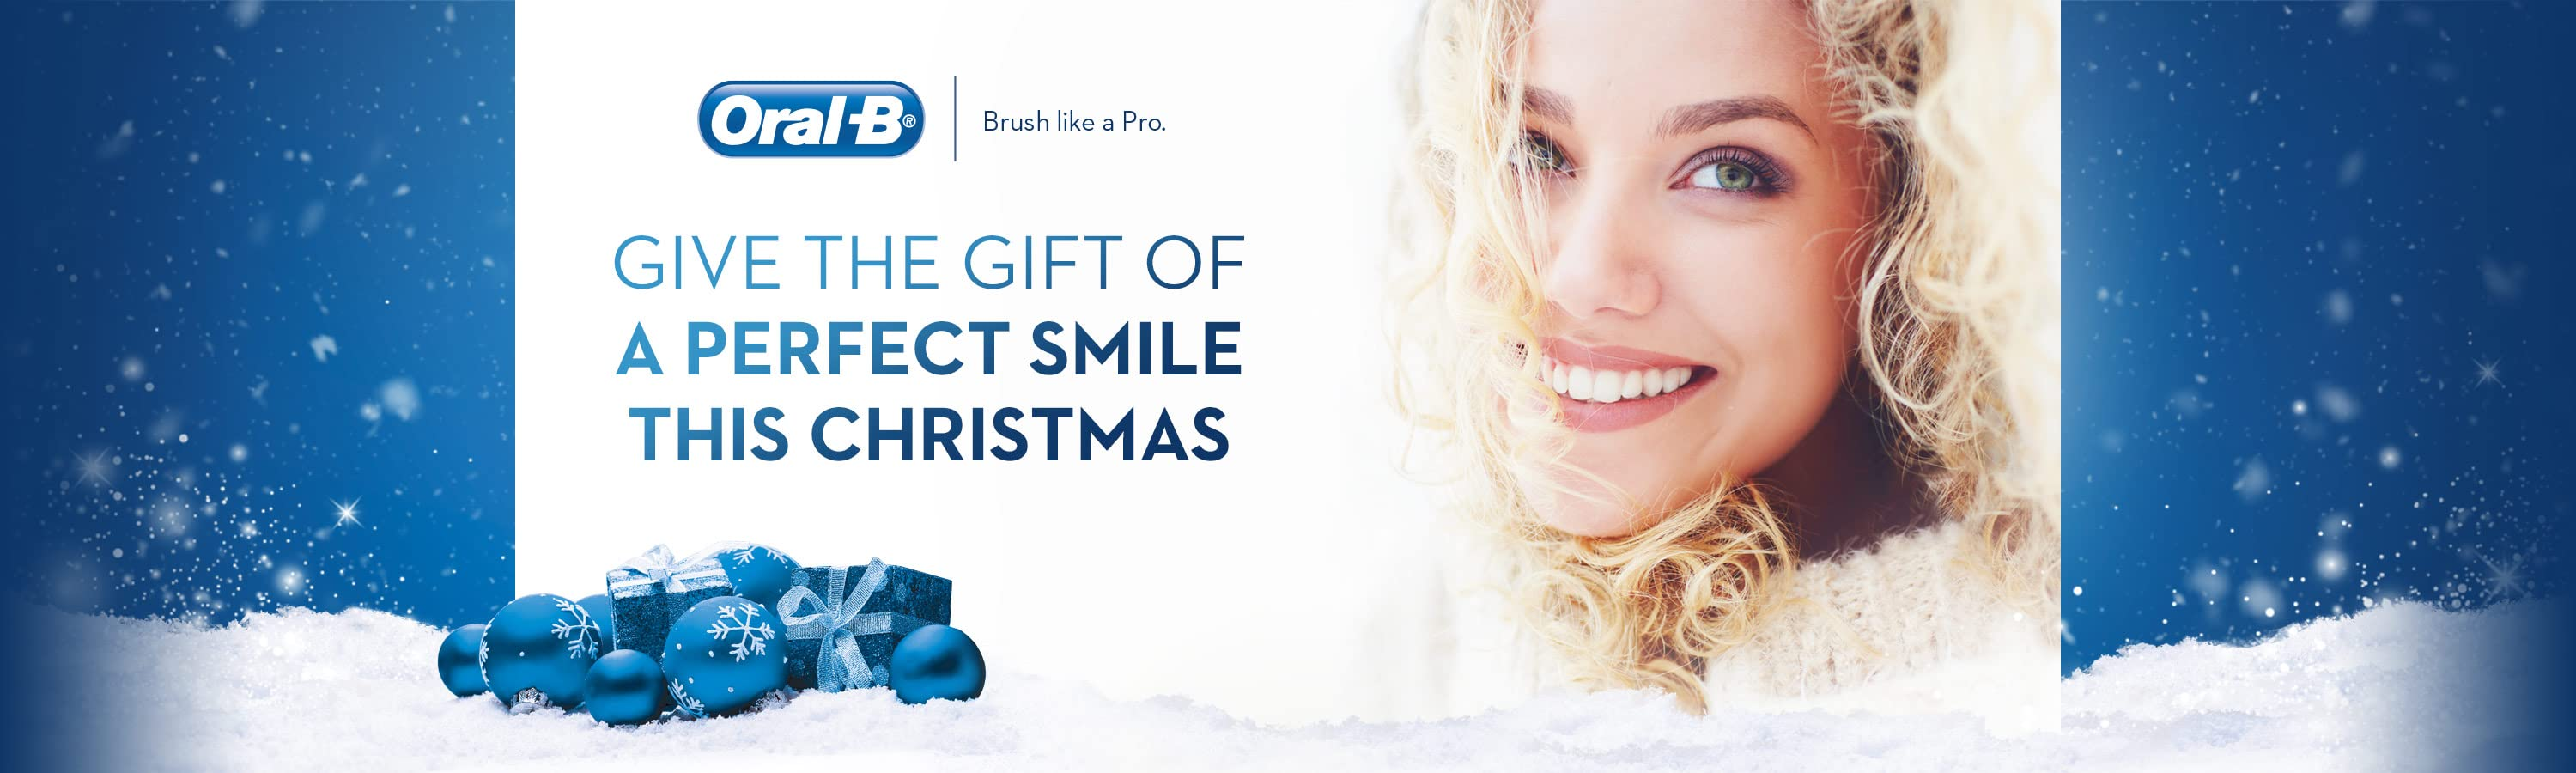 Oral B. Give the gift of a perfect smile this Christmas.